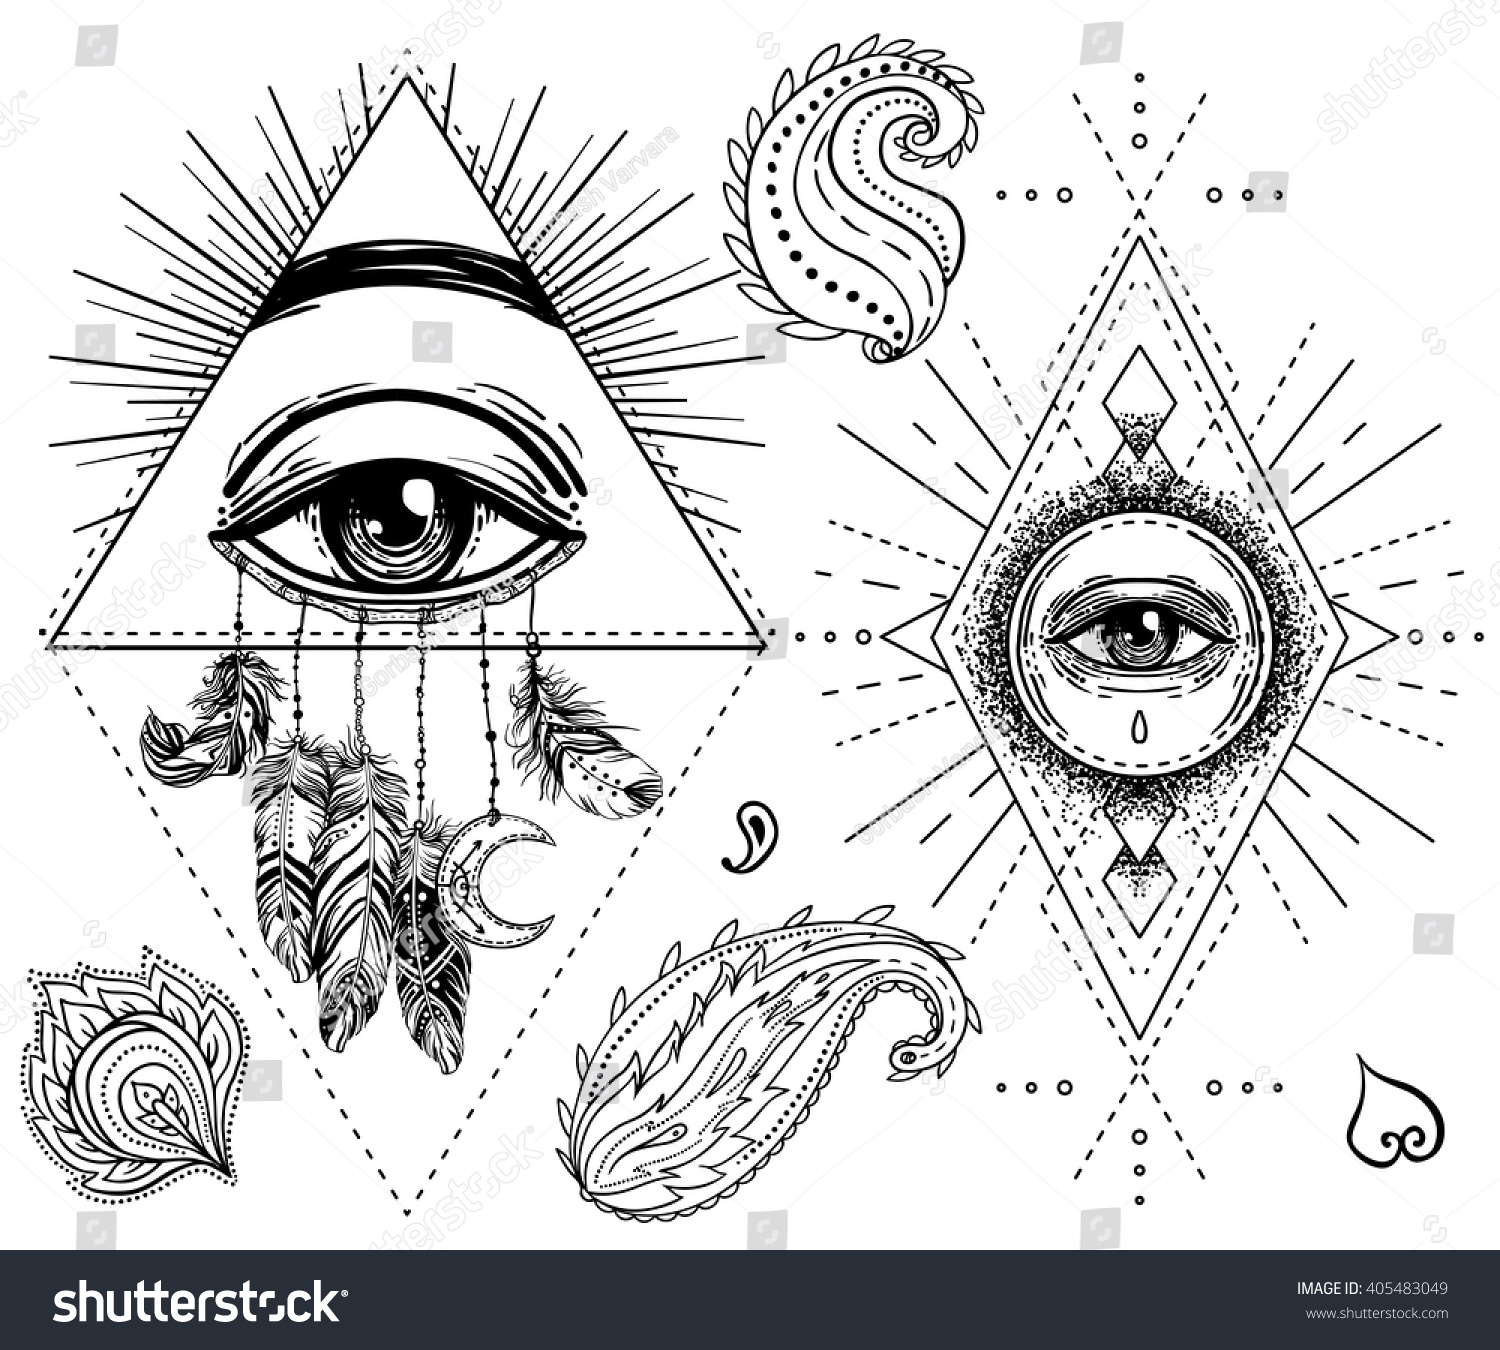 Sacred geometry symbol all seeing eye stock vector 405483049 sacred geometry symbol with all seeing eye isolated on white mystic alchemy occult biocorpaavc Choice Image